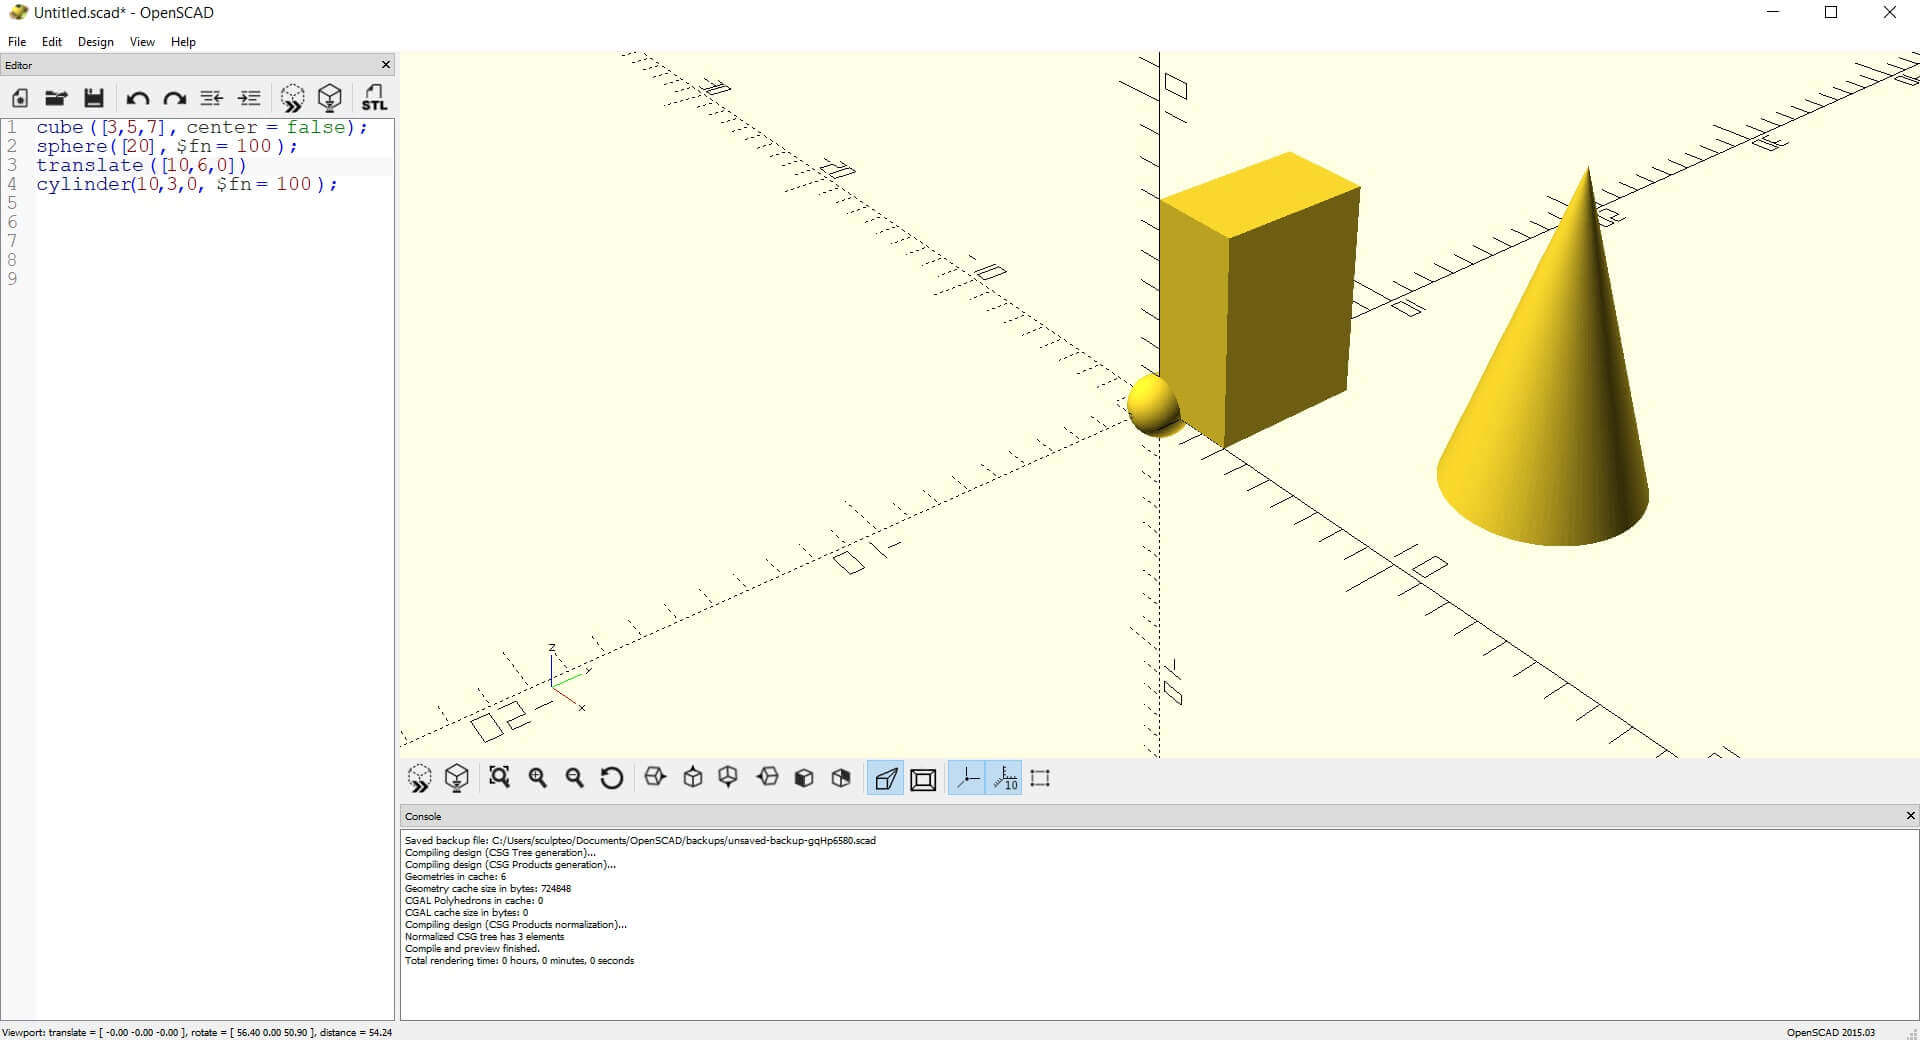 OpenSCAD: Creating a 3D object